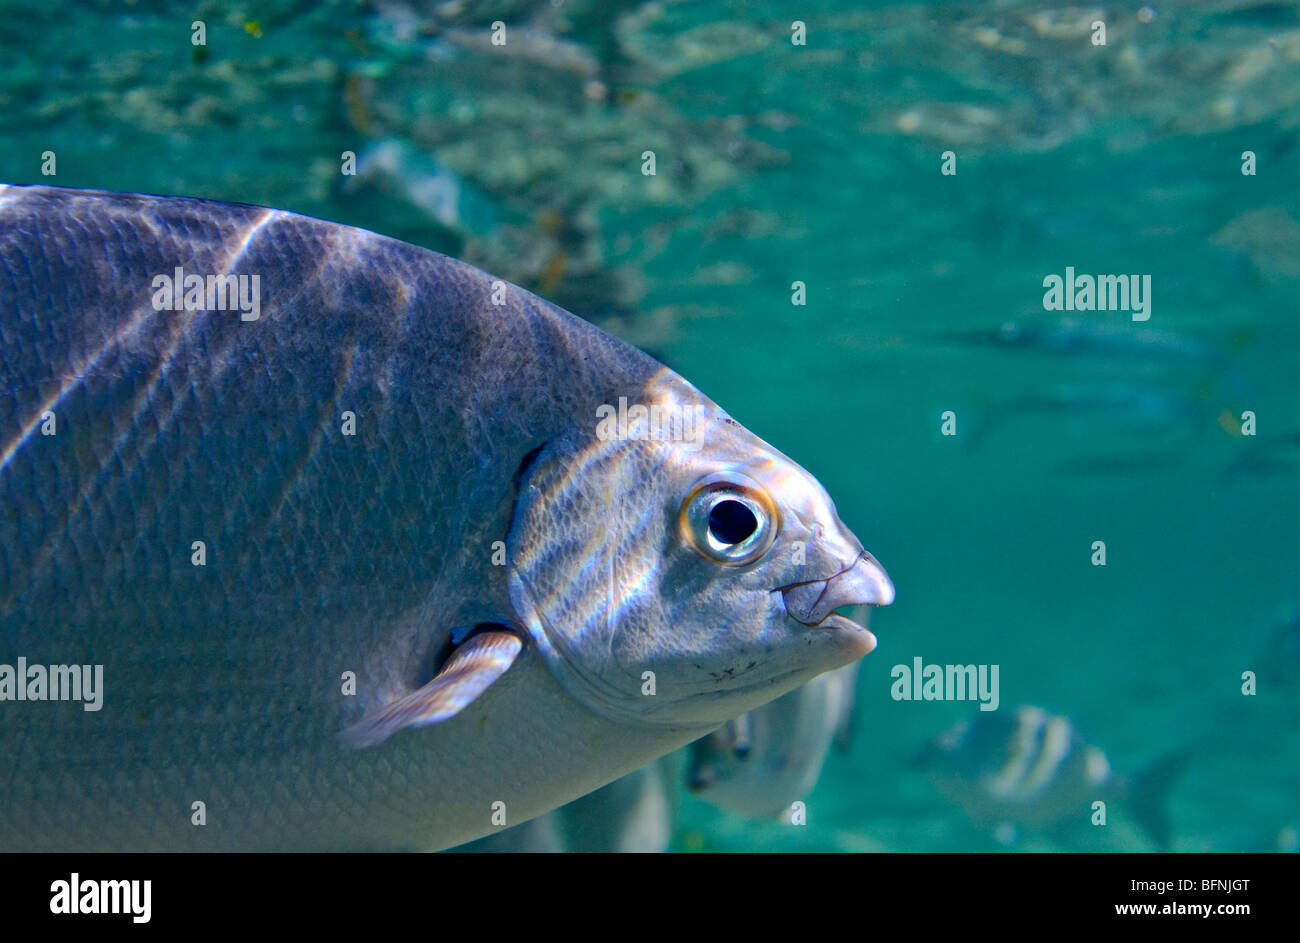 Underwater close-up view of a saltwater fish, ocean - Stock Image